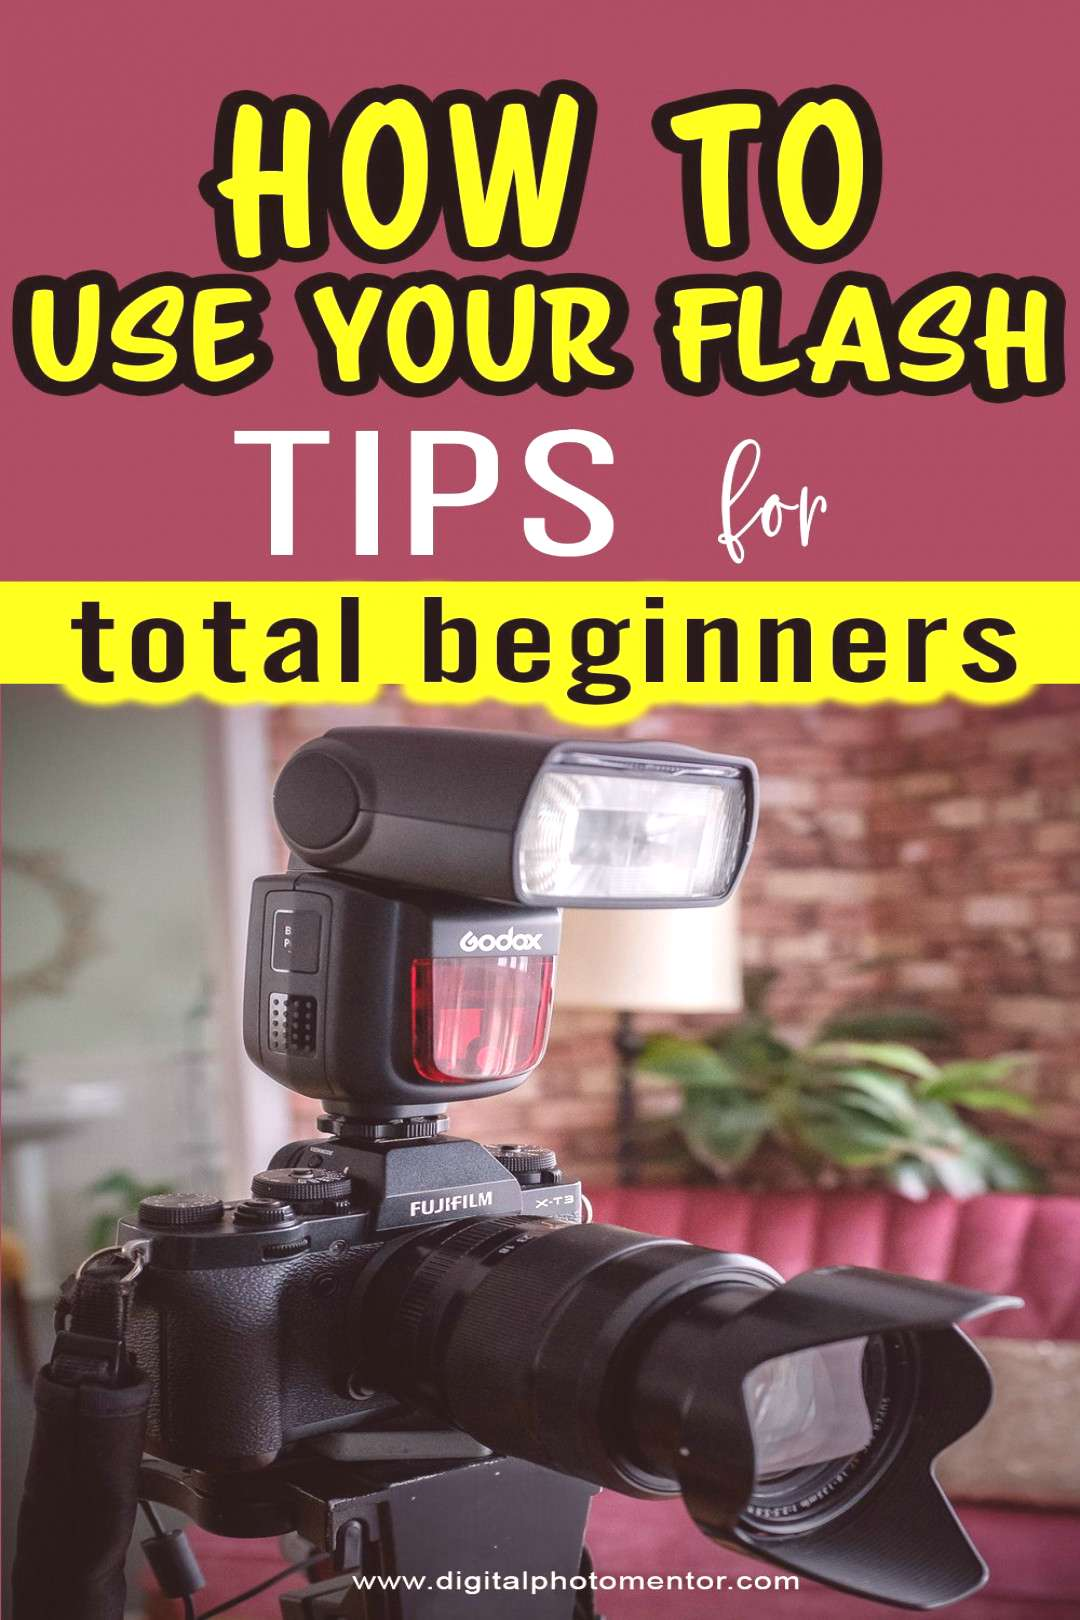 How to Use Your Flash – Tips for Total Beginners Learn how to use your flash. Flash photography